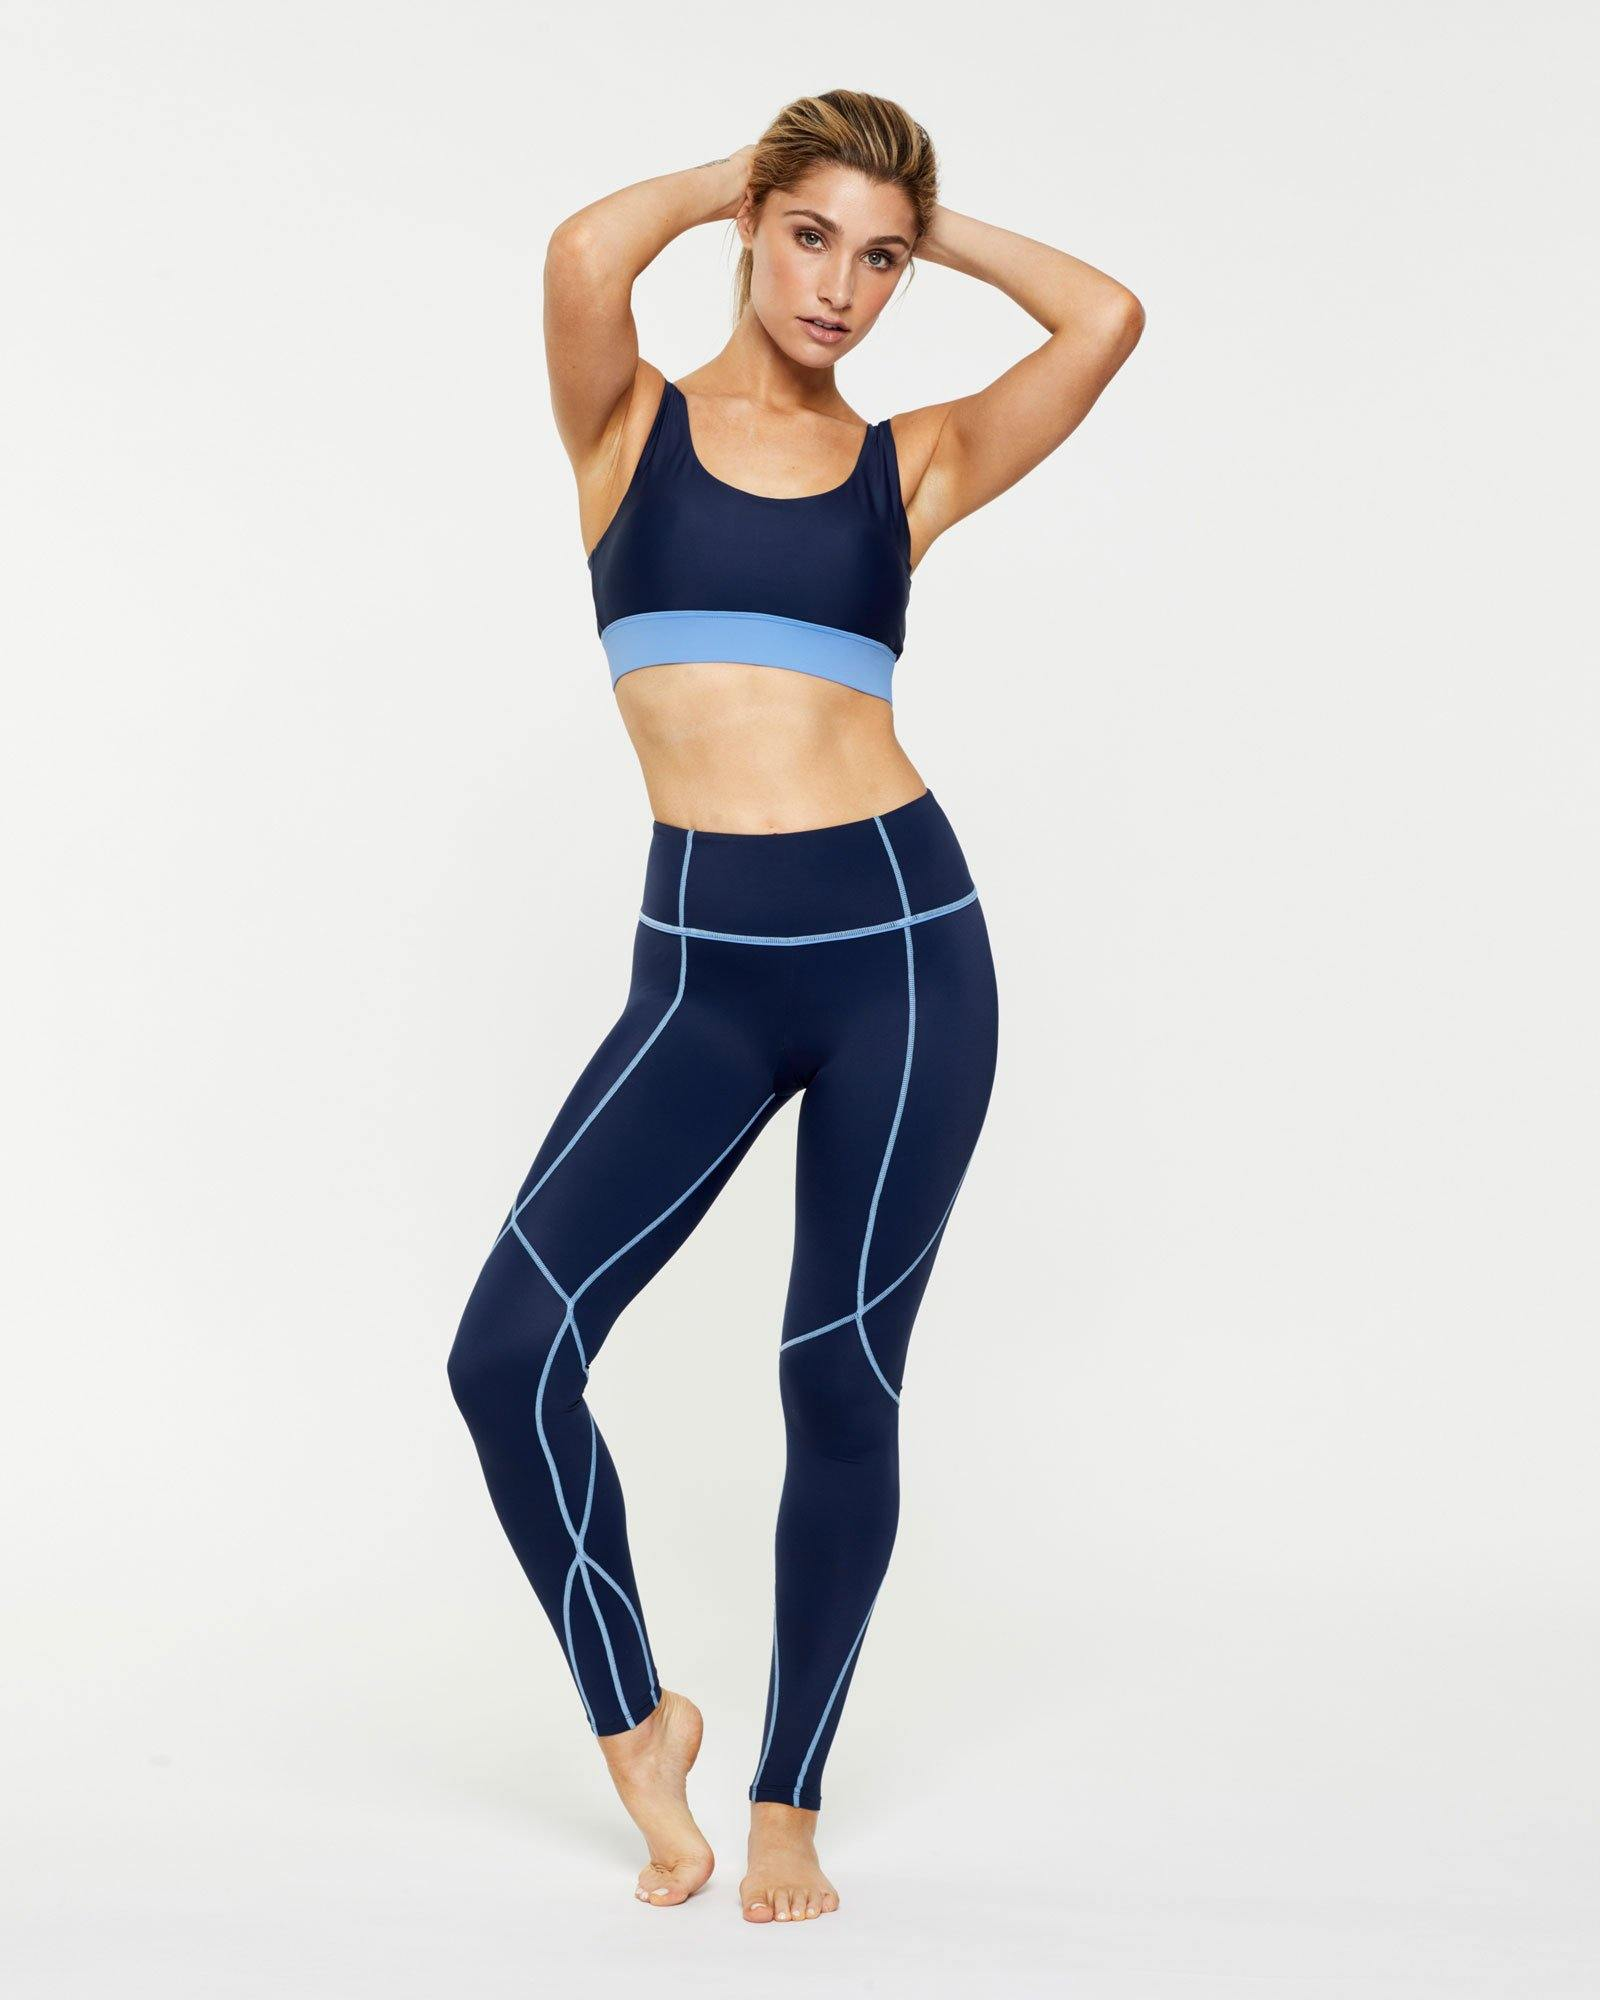 Femininely Pectoralis Navy bra top with contrast under bust band worn with Vastus navy mid waist long legging, front view, great for pilates, barre and in-studio workouts